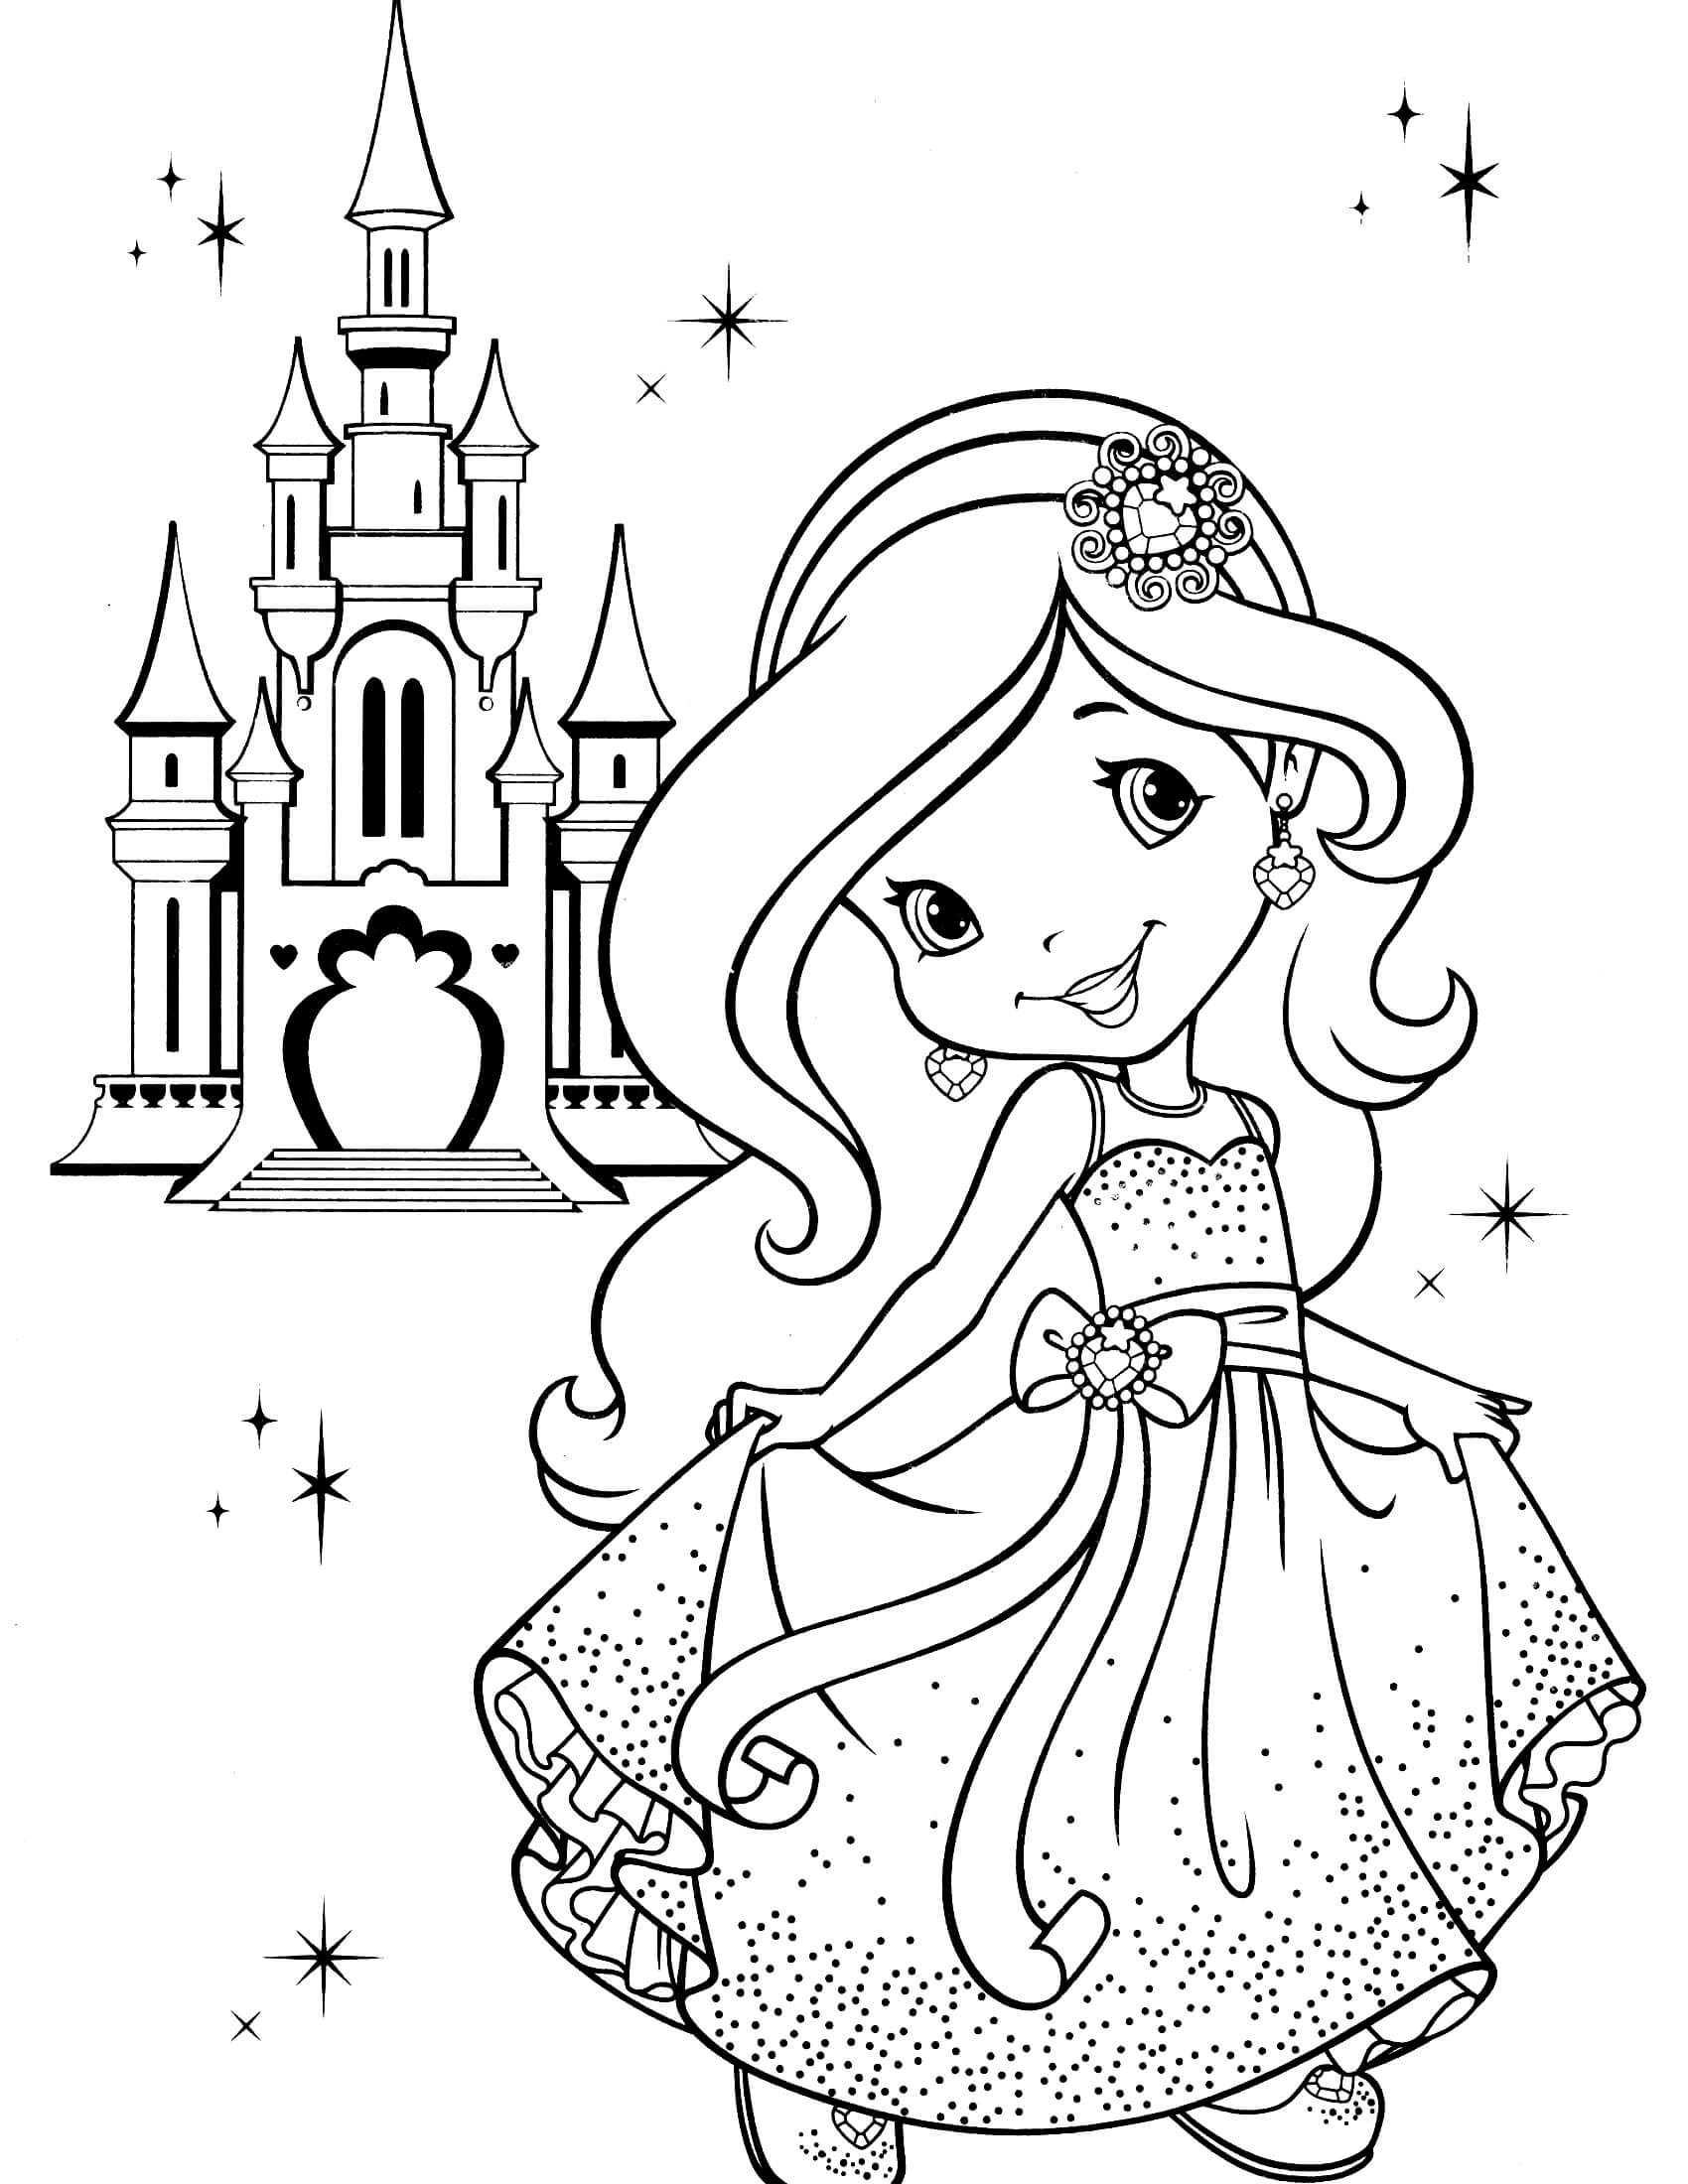 april coloring pages - strawberry shortcake coloring page 9